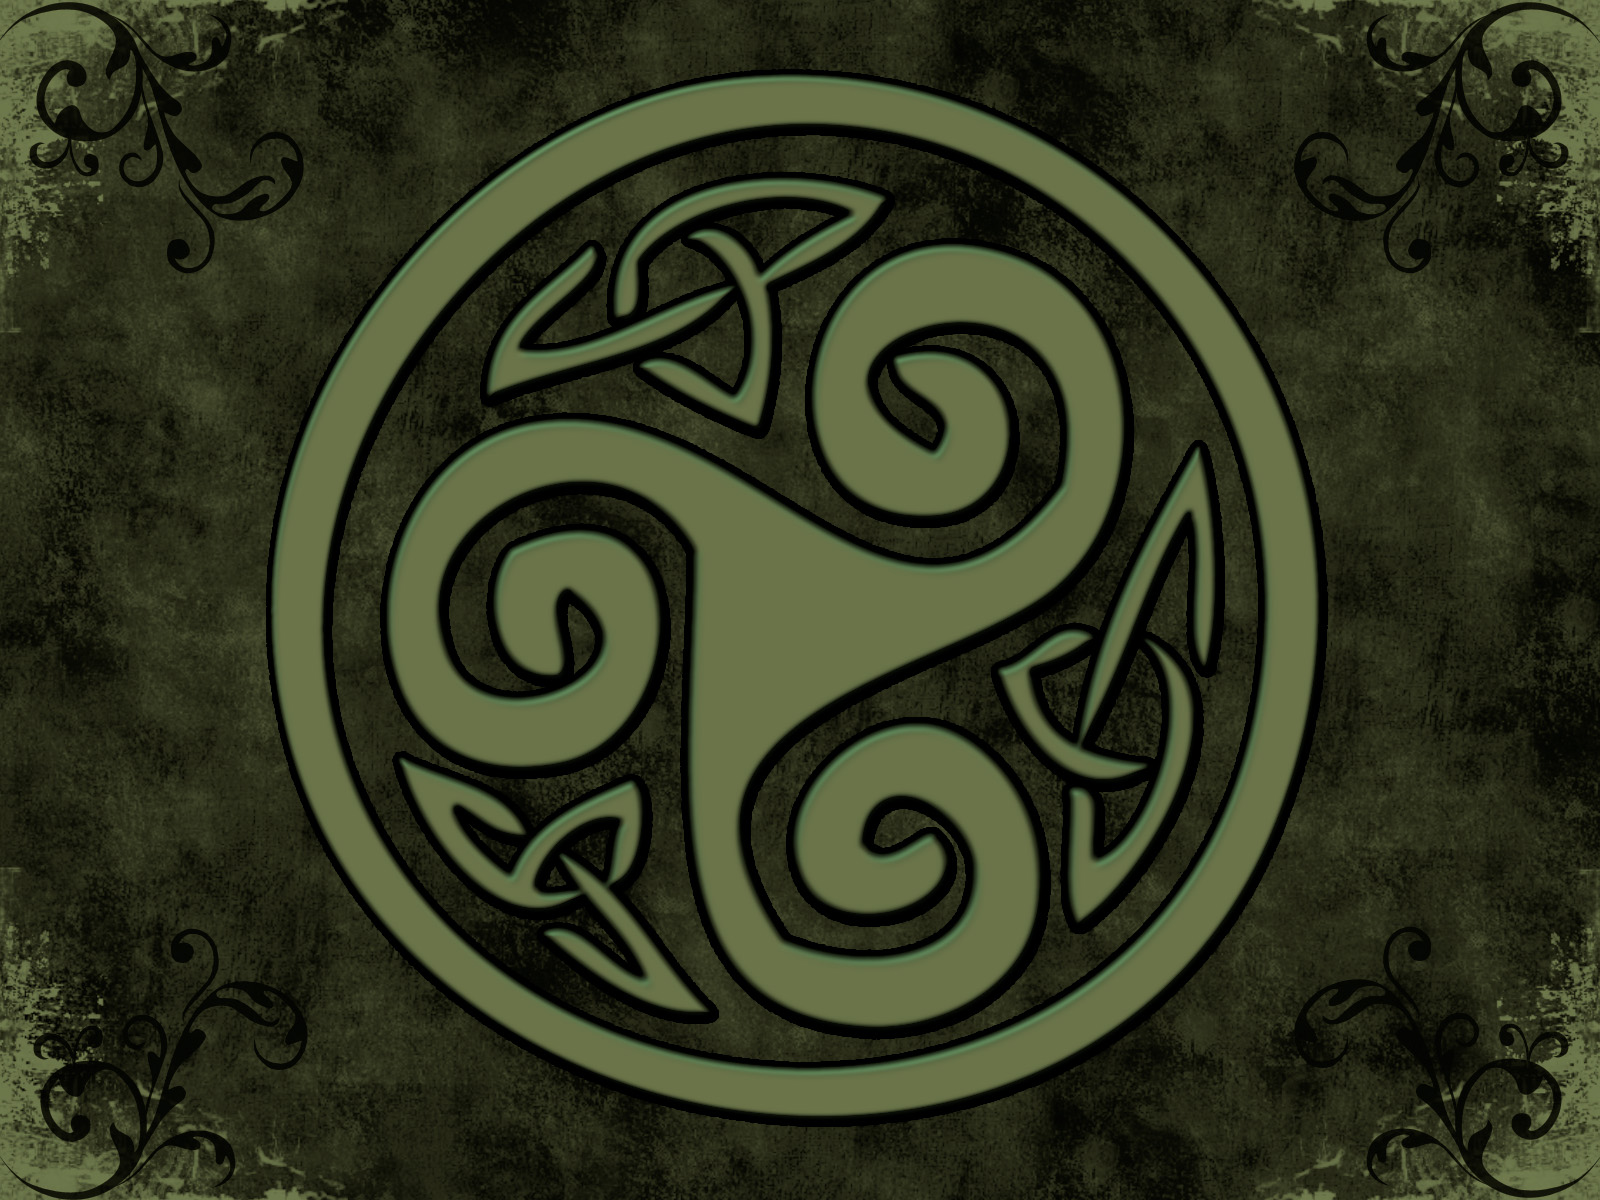 Celtic Knot Wallpapers Desktop  WallpaperSafari